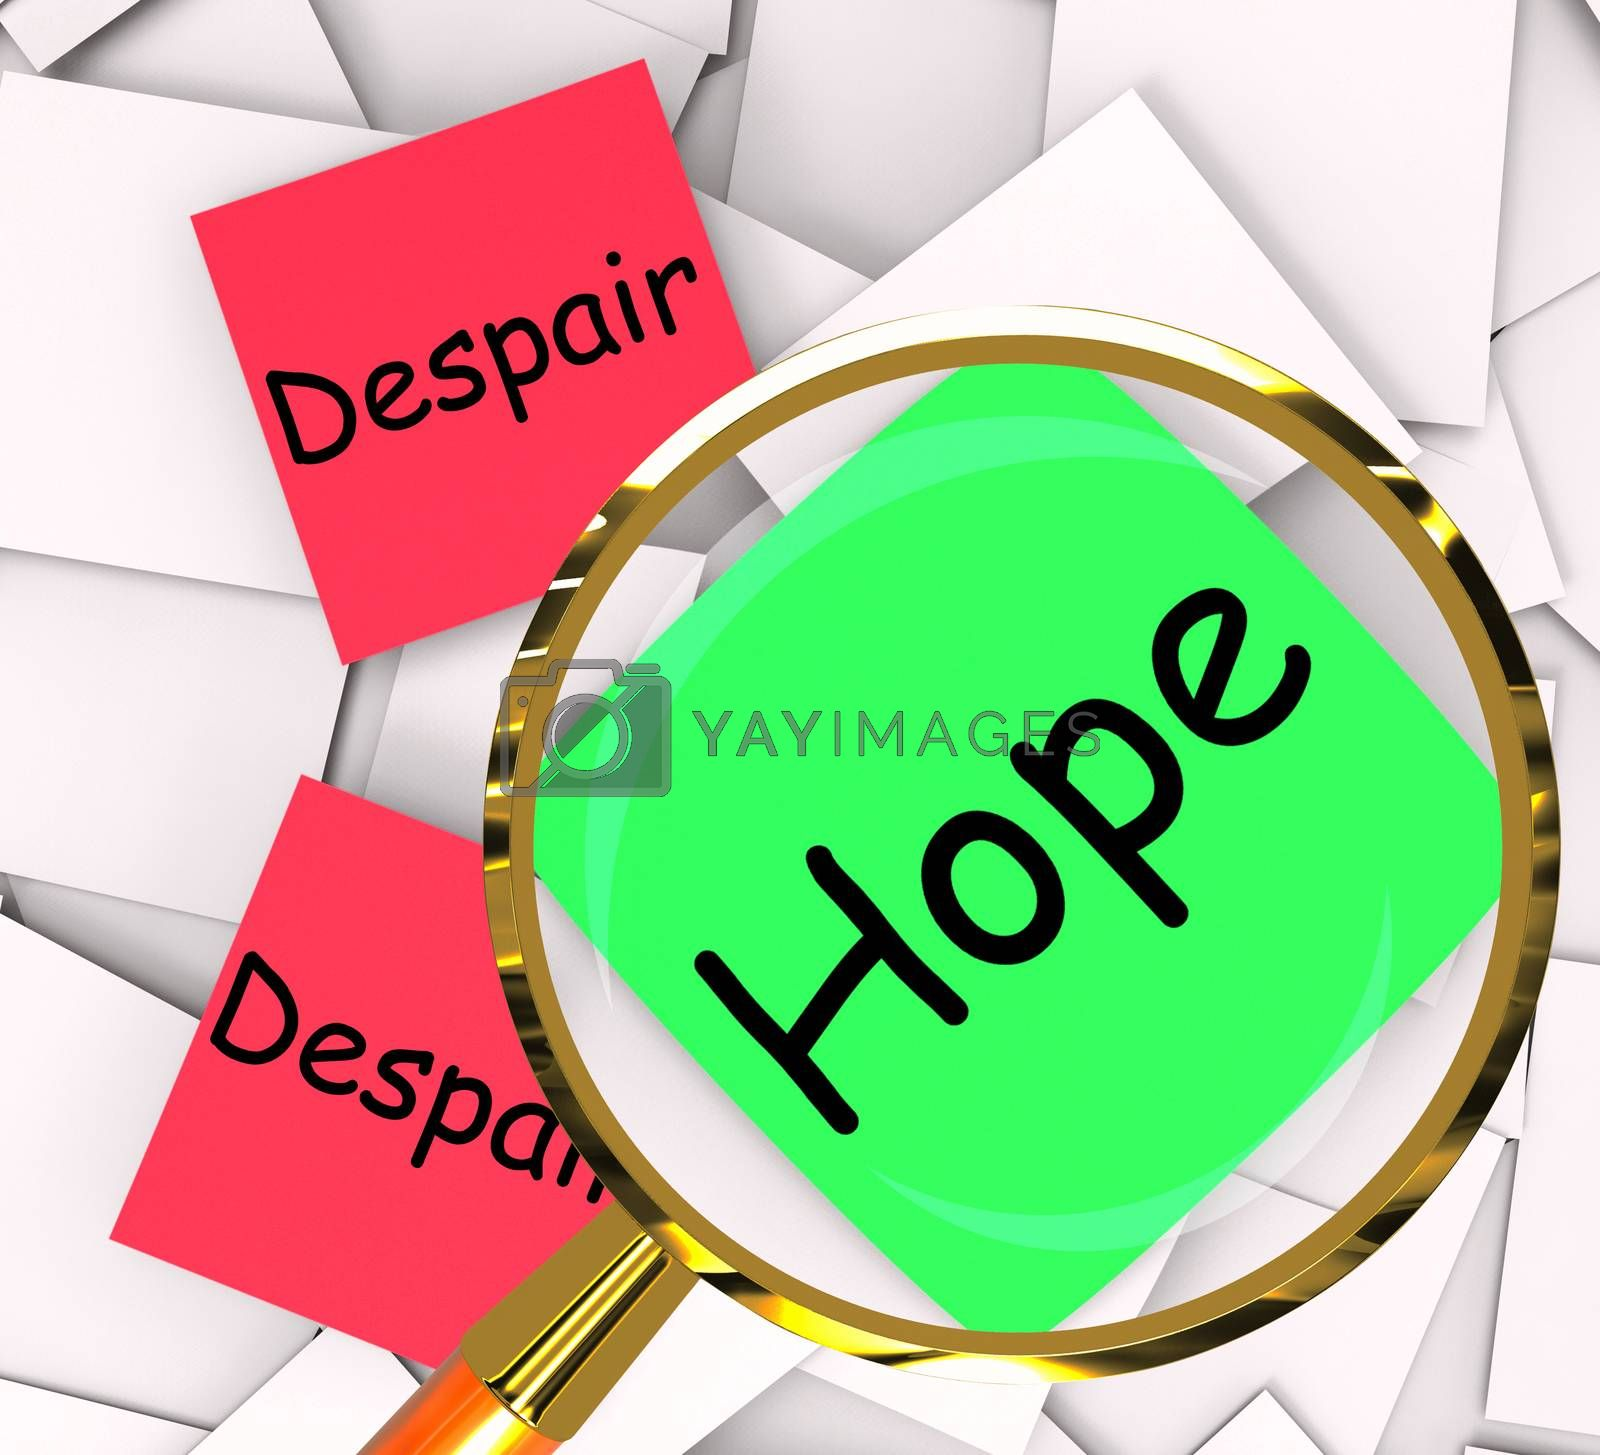 Hope Despair Post-It Papers Show Hoping Or Depression by stuartmiles